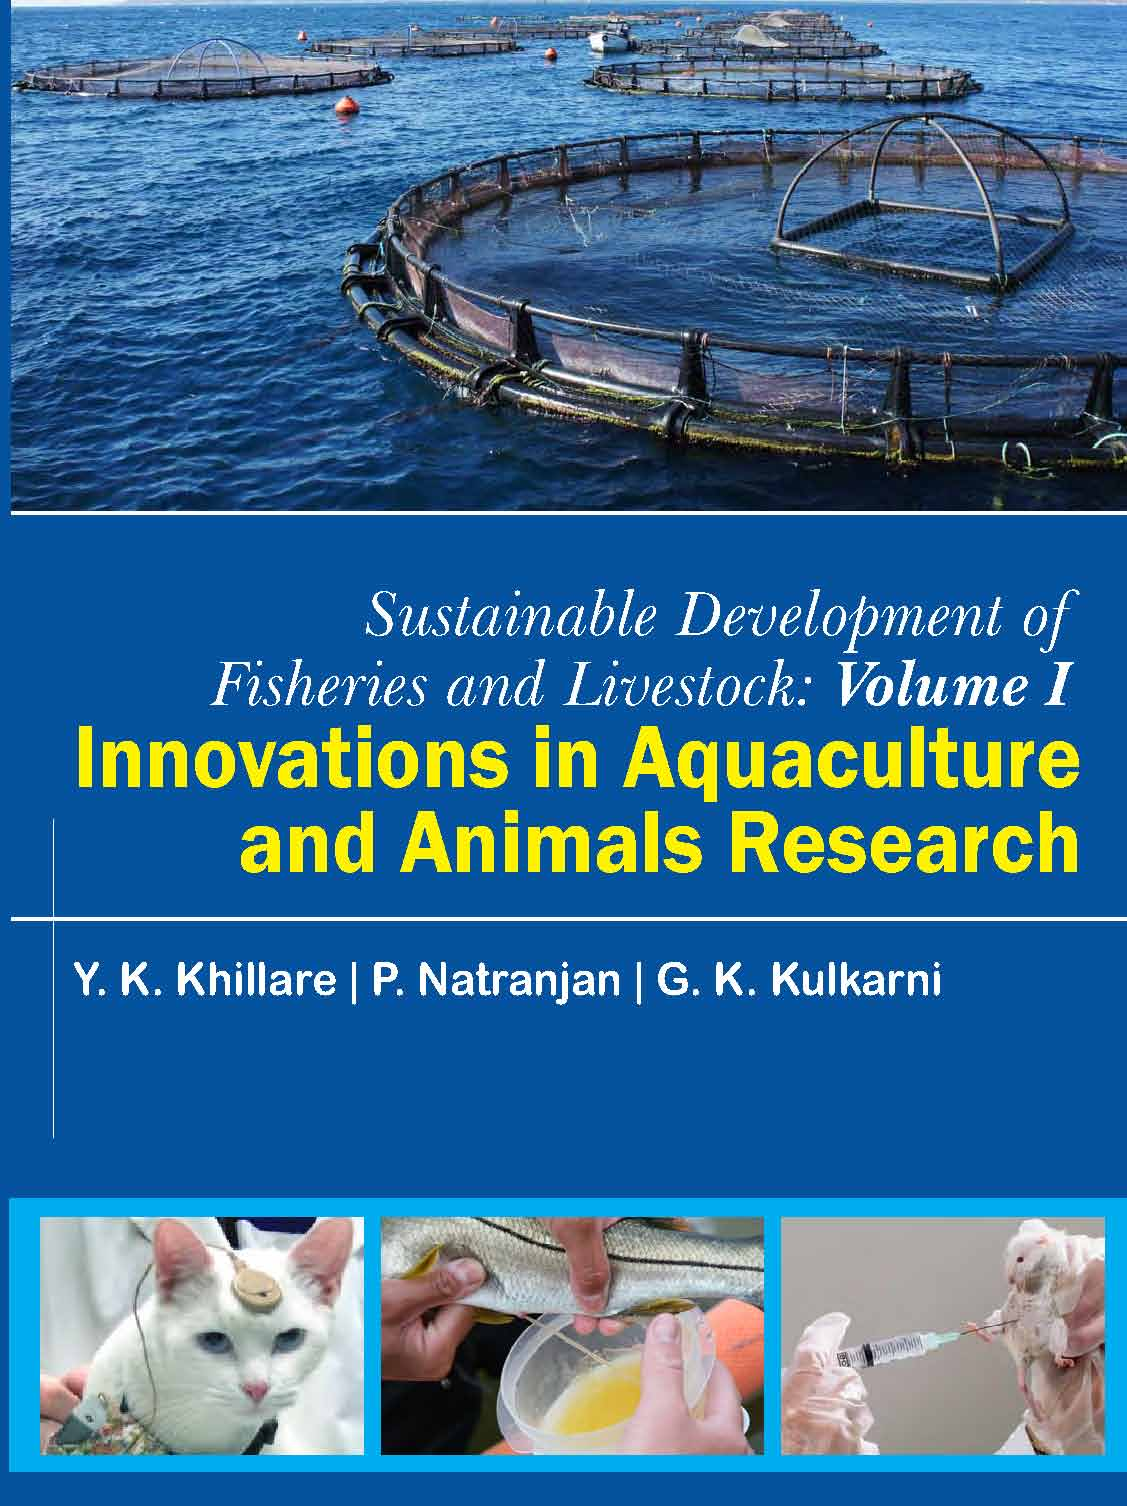 Sustainable Development of Fisheries and Livestock : Innovation in Aquaculture and Animals Research    Vol I